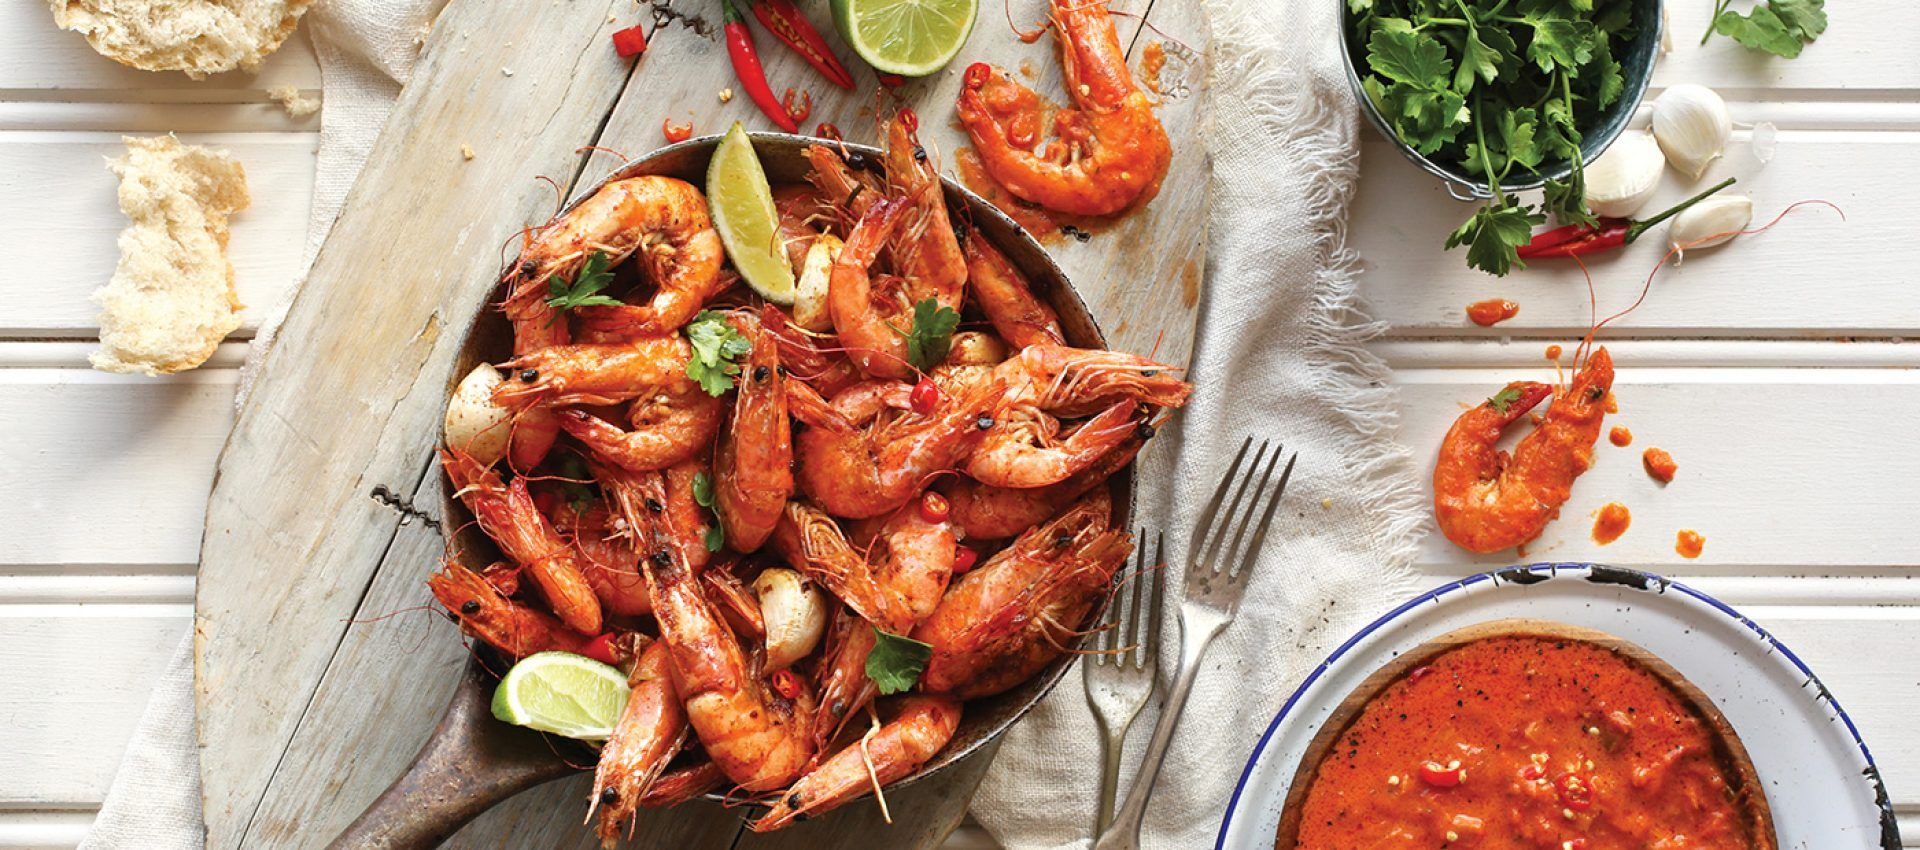 Communication on this topic: Pan-fried prawn and chilli, pan-fried-prawn-and-chilli/